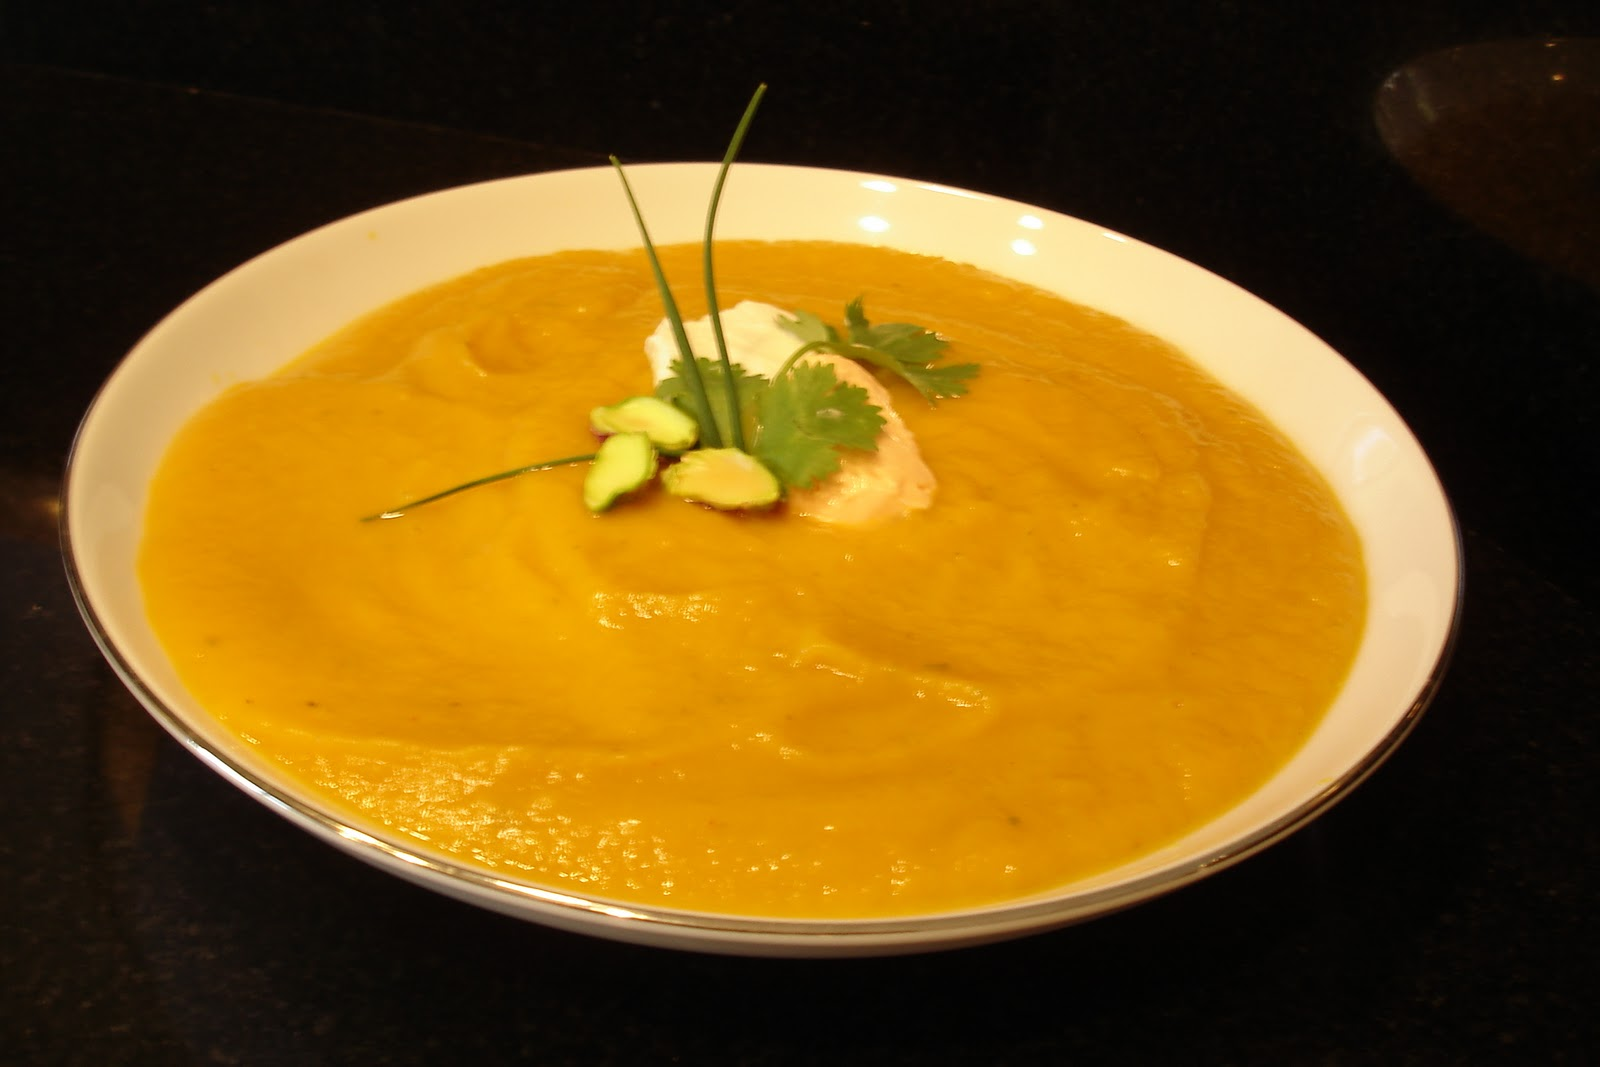 ... Recipe for the best Butternut Squash Bisque soup that I've ever had